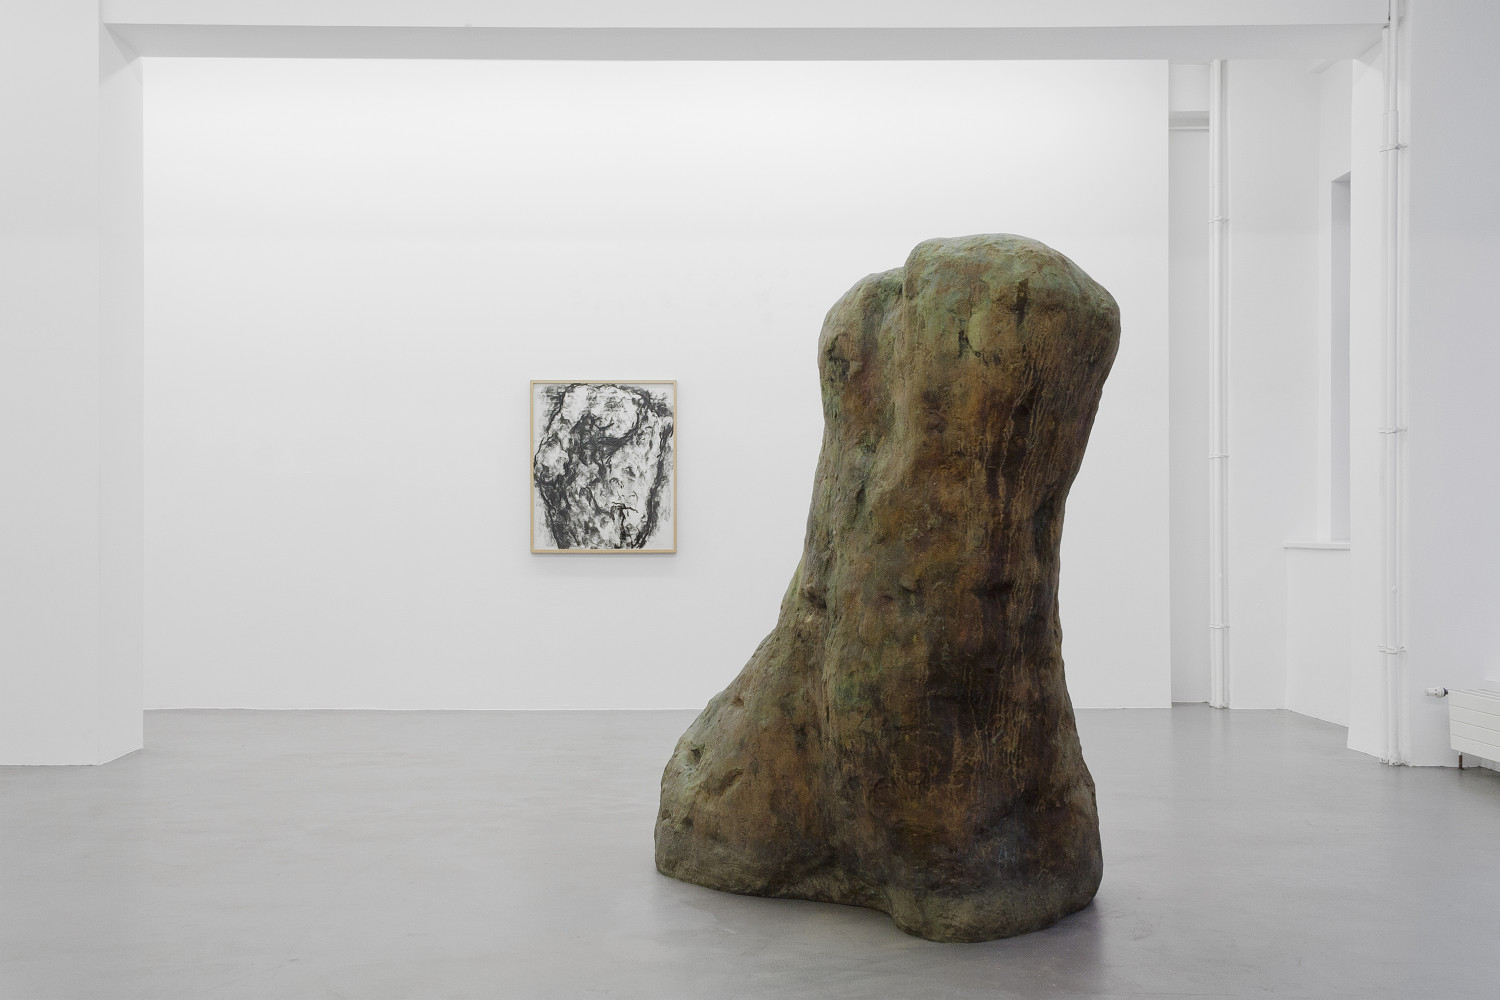 William Tucker, 'Figure – Tony Cragg - Martin Disler - Medardo Rosso - William Tucker - Rebecca Warren', Installation view, Buchmann Galerie, 2015–2016